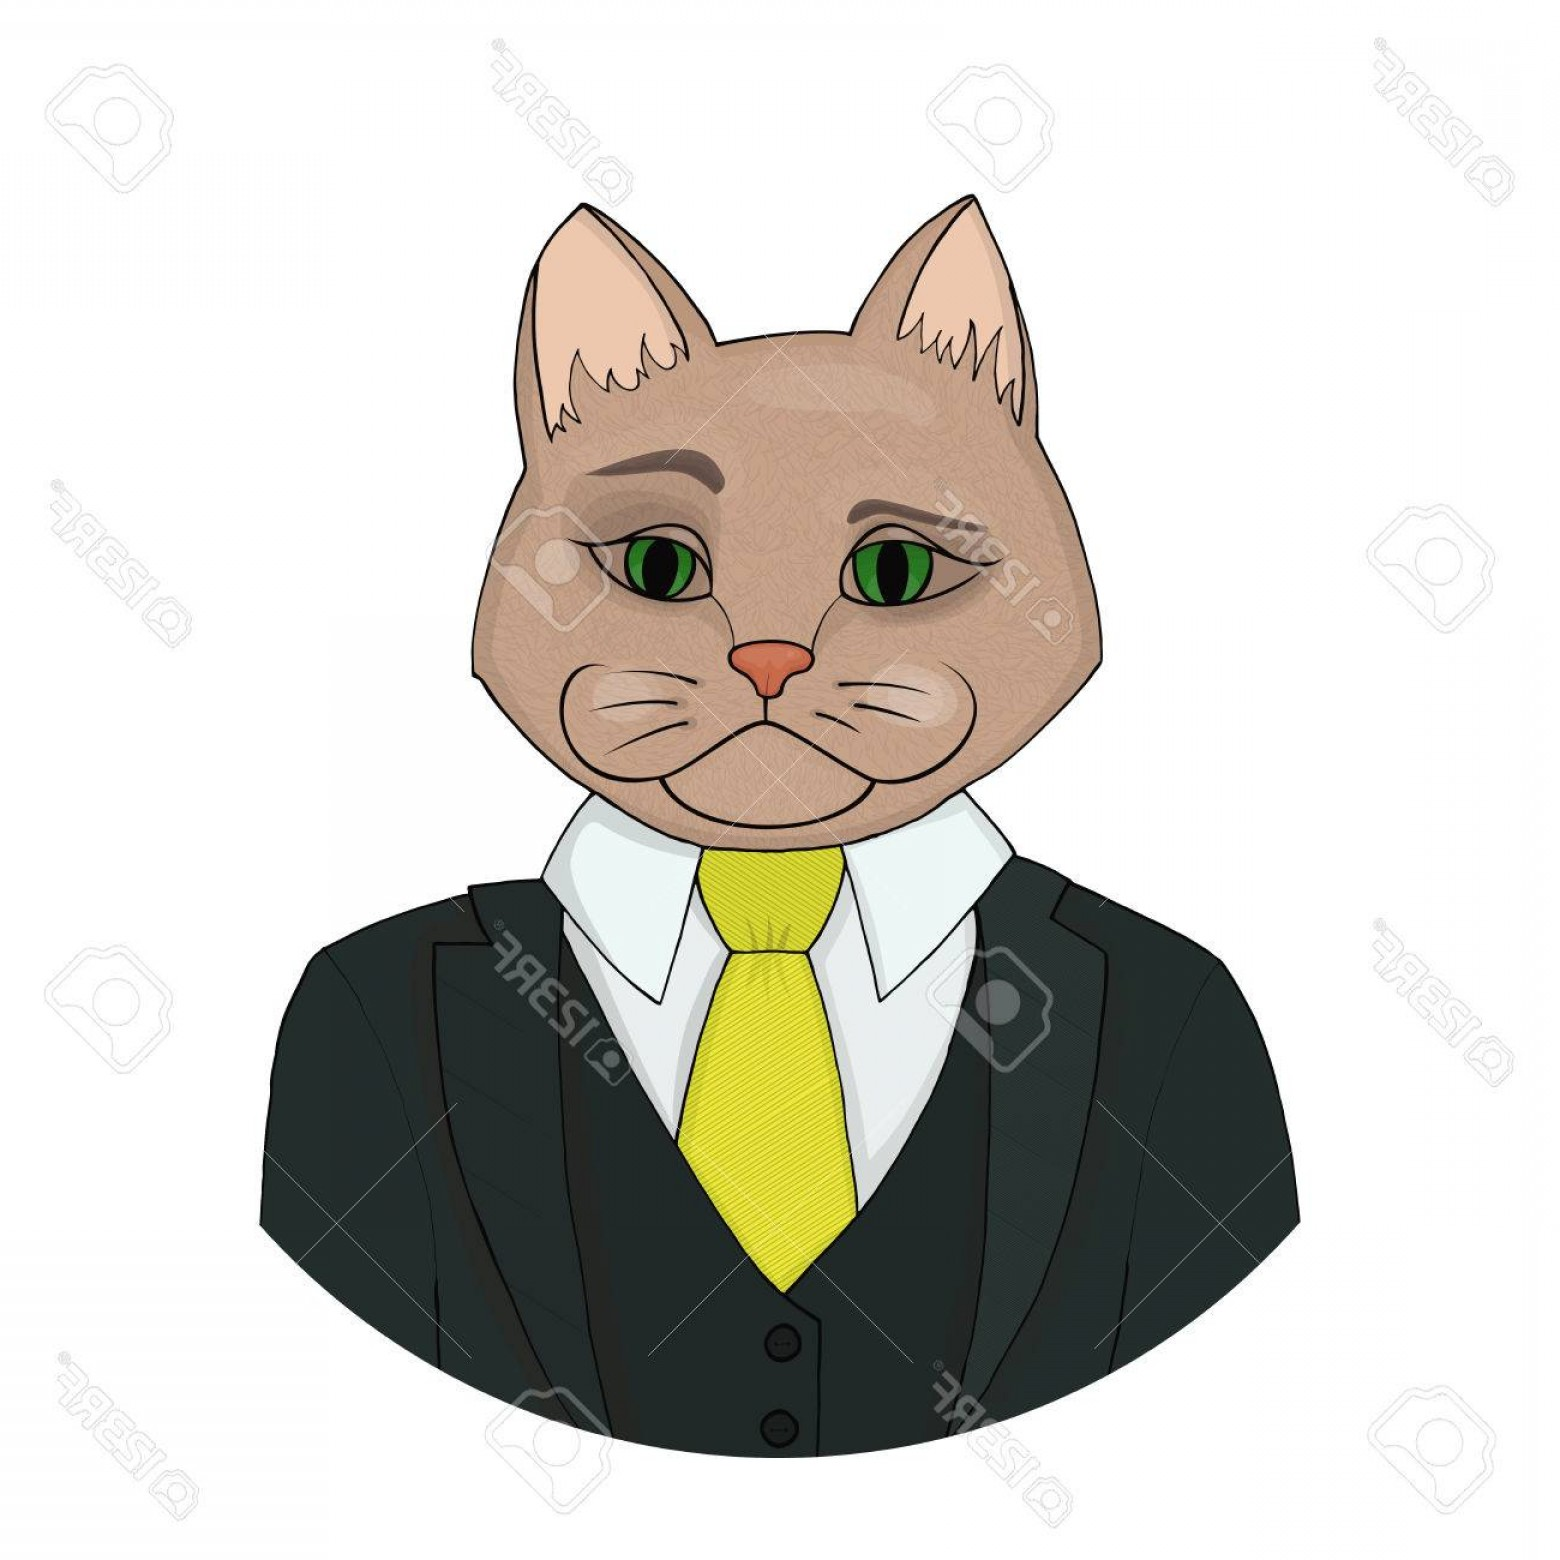 Malee Cat Head Silhouette Vector: Photostock Vector Catman Boss In A Suit With A Yellow Tie A Hybrid Of Man And Cat Vector Illustration Fashion Portrait